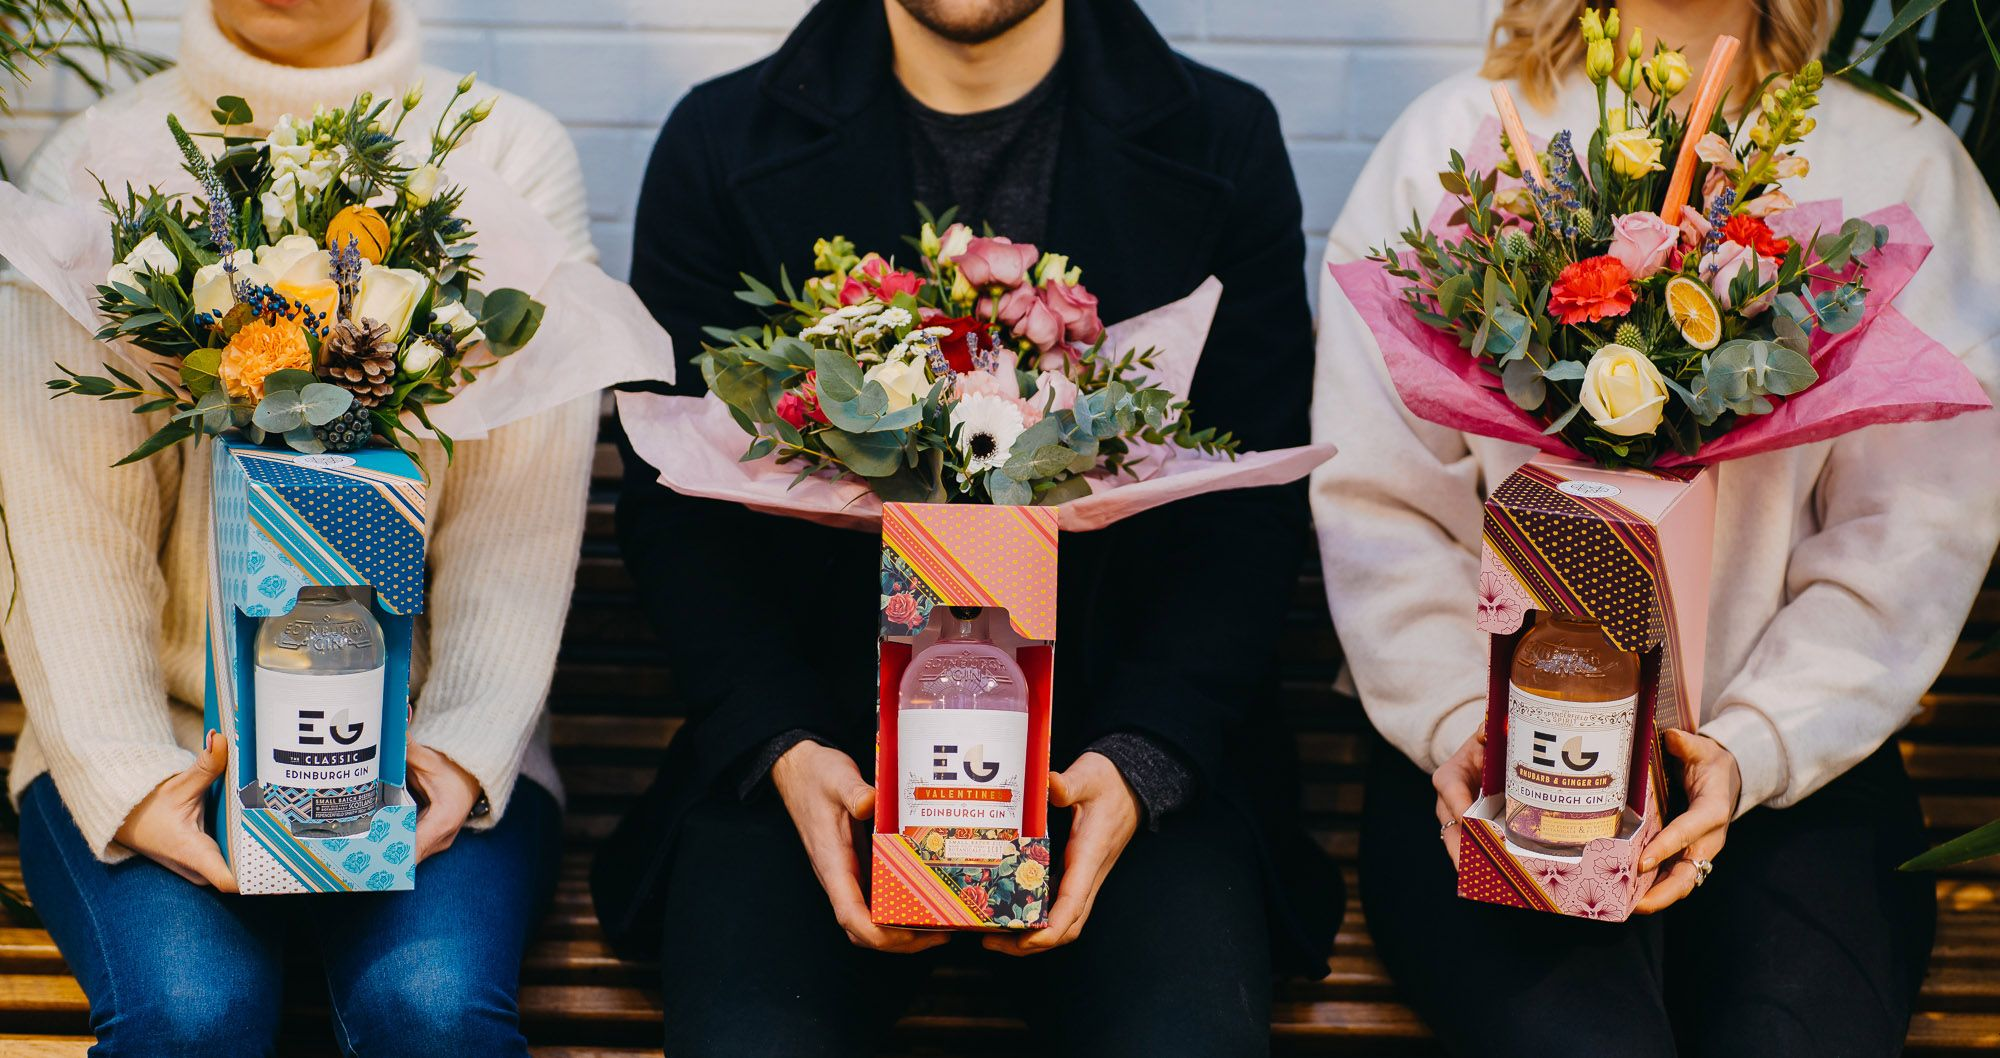 Gin bouquets make for an ideal Valentine's gift